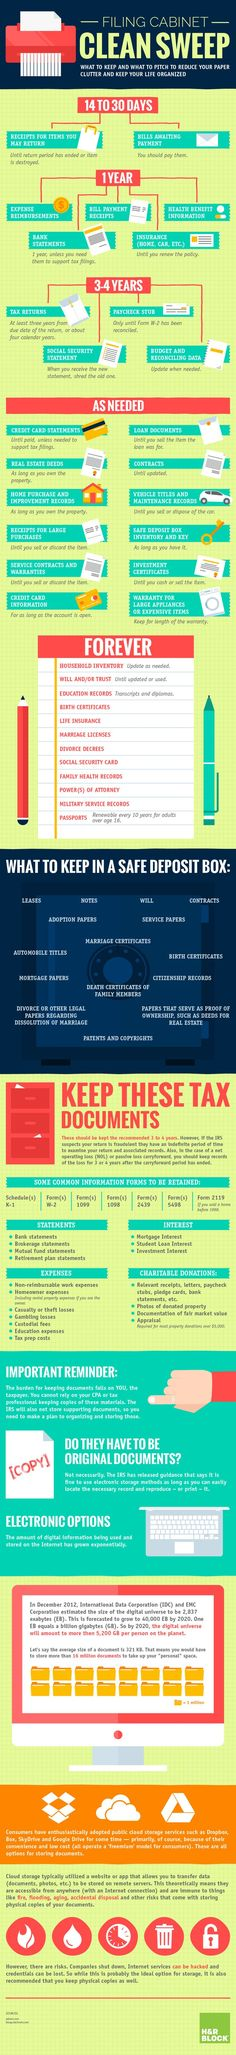 This is really useful as we all do our spring cleaning! This guide can help you sort through the stack of documents, receipts and other papers that have piled up. Learn what to keep and what to trash. Filing Cabinet Organization, Organizing Paperwork, Home Office Organization, Paper Organization, Filing Cabinets, Organizing Documents, Organizing Ideas, Organize Receipts, Receipt Organization